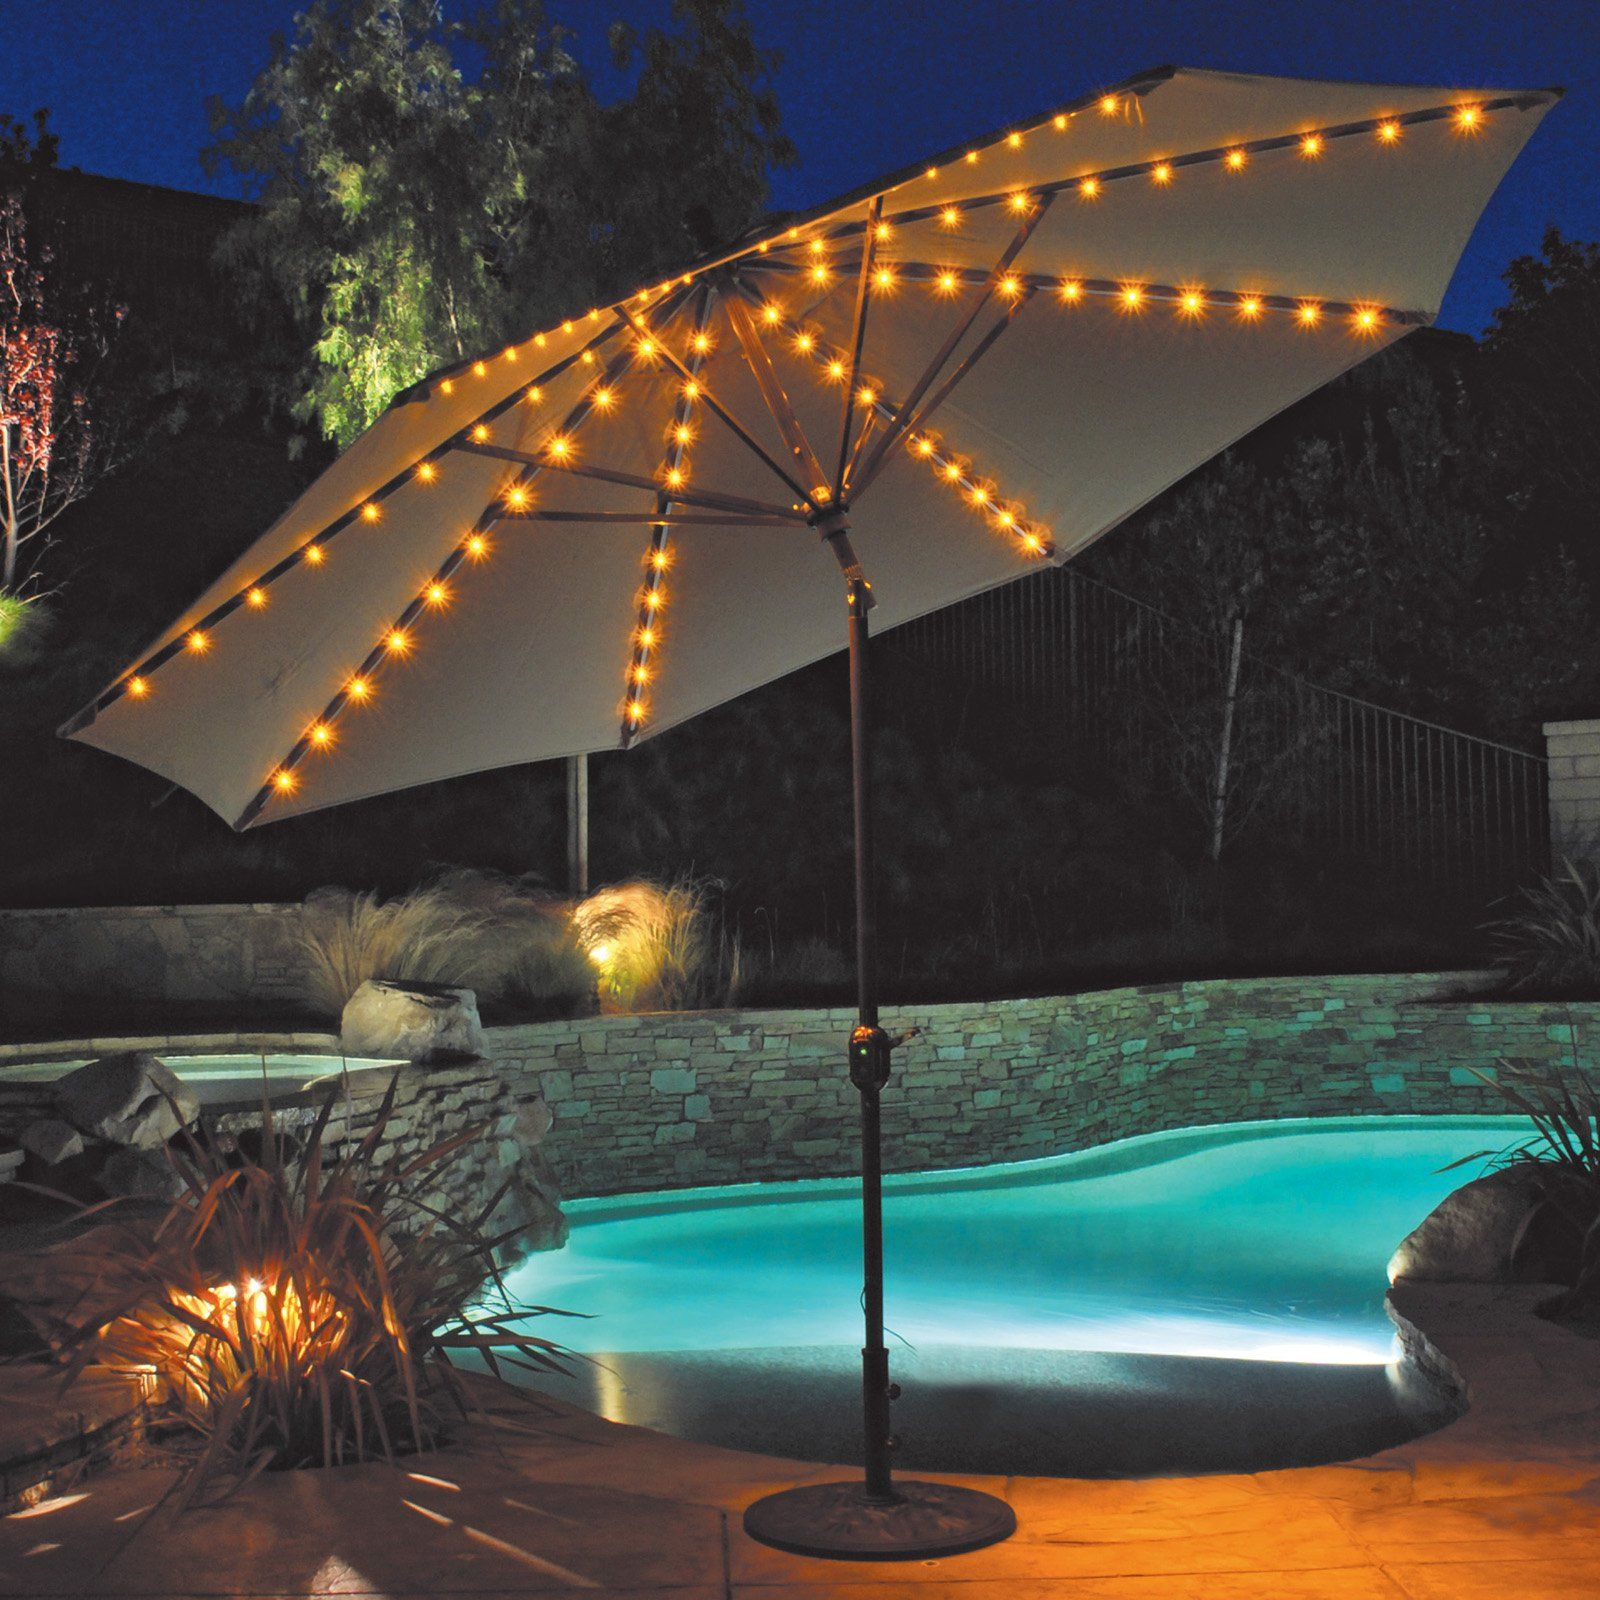 Galtech 11 Ft Auto Tilt Patio Umbrella With Led Umbrella Lights This Is A Great Patio Umbrella To Outdoor Umbrella Lights Best Patio Umbrella Patio Umbrella